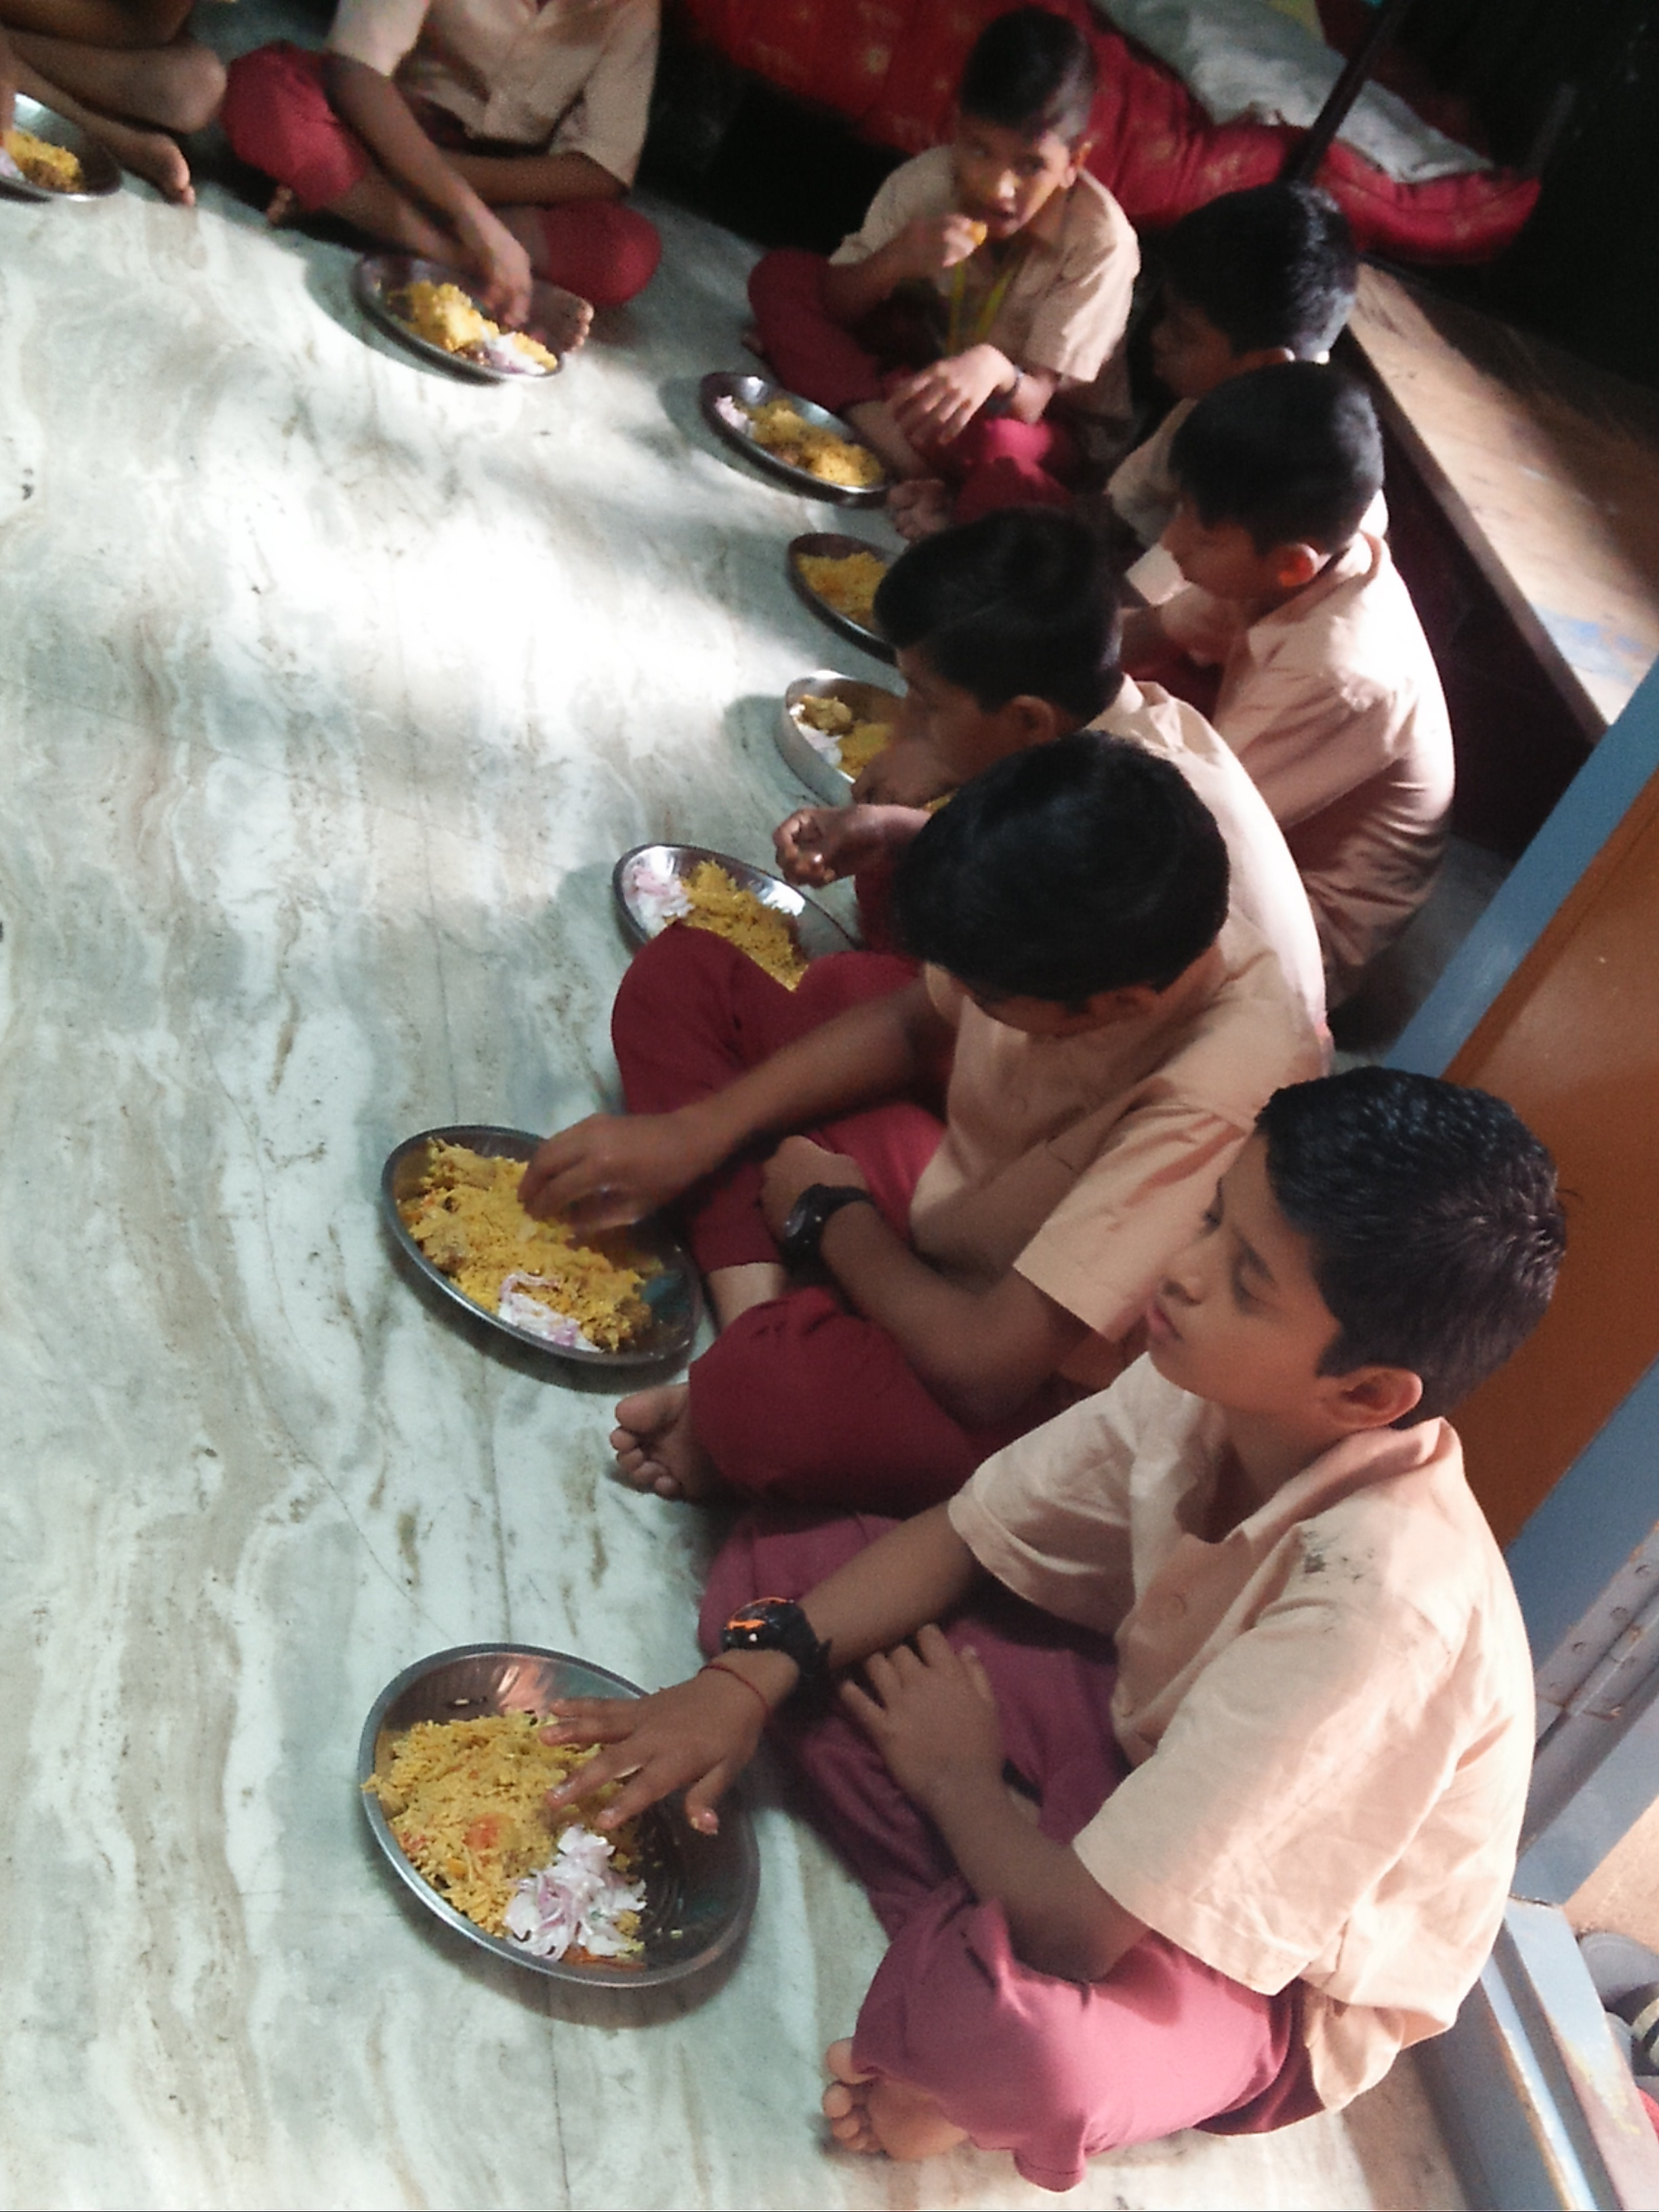 """SUPPORT ORPHANAGE IN CHENNAI   Safe India Orphanage also depends on corporate funds, philanthropic donors, volunteers and well-wishers for managing this large operation. Dear friends Safe India Orphanage Invite You Join your Hands with us is great gain and having food raiment let us be there with support,   we send receipt to your respected donation or can due donate online at Children Bank Details: - https://agamfoundation.org/safeindia/  Tax deductible U/S 80 G (5) (vi) of Income Tax  cheque/DD. Cheque draft is to be made in favour of """"SAFE INDIA"""" at Chennai. http://safeindiaorphanage.com  http://www.safeindia.me/ Devadoss Pathra Cell: 8608311081"""